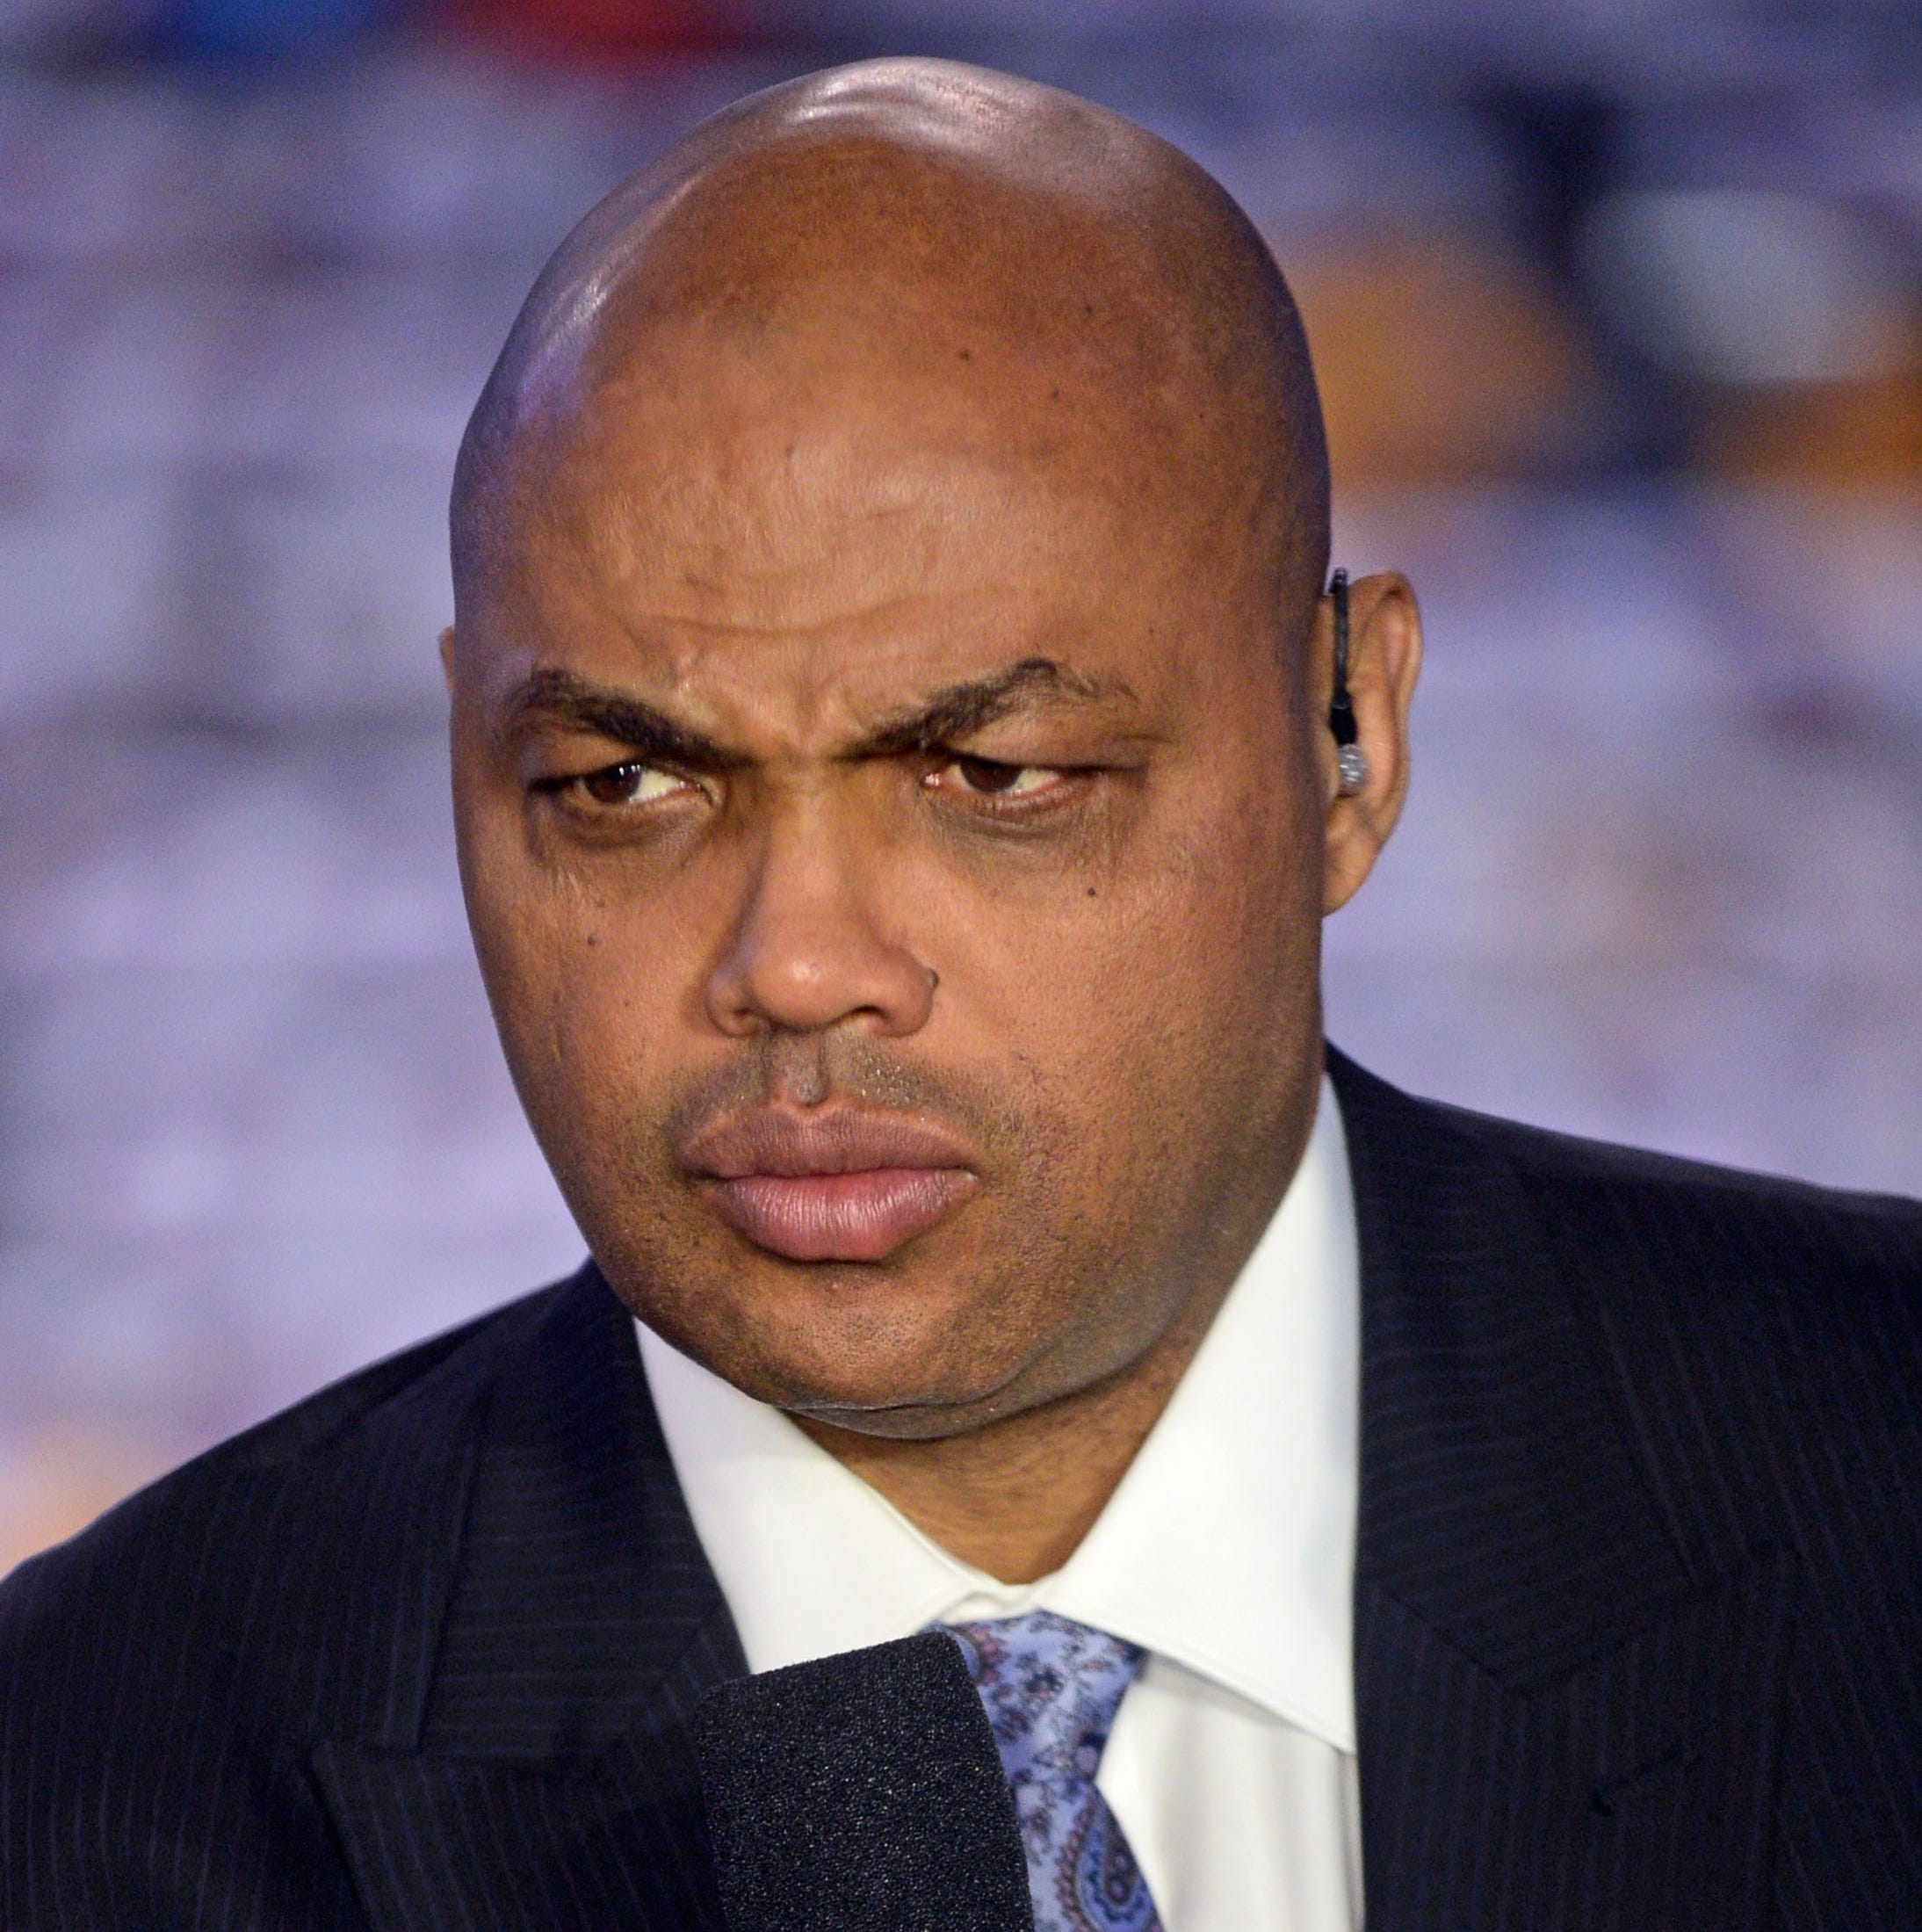 Charles Barkley guarantees a Suns victory, and they snap a 10-game losing streak